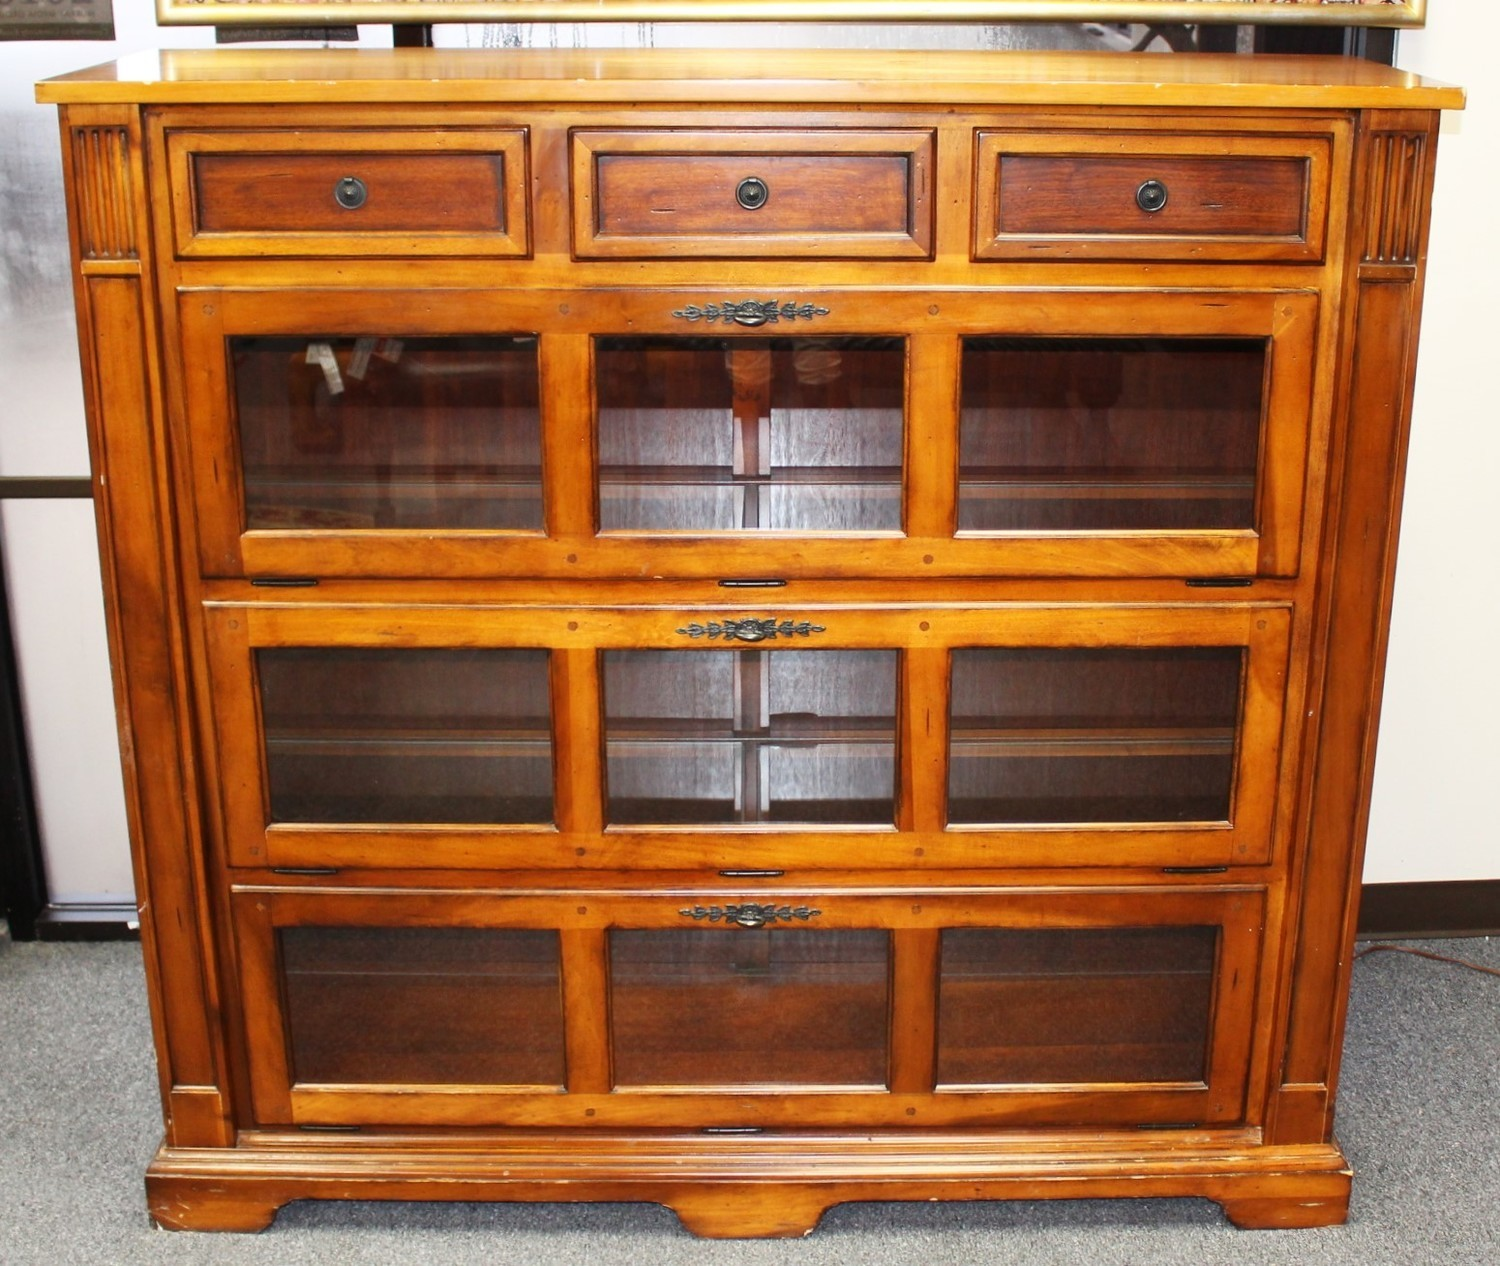 Vintage Barrister Lighted Bookcase Display Cabinet w/ Drop Down Glass Doors